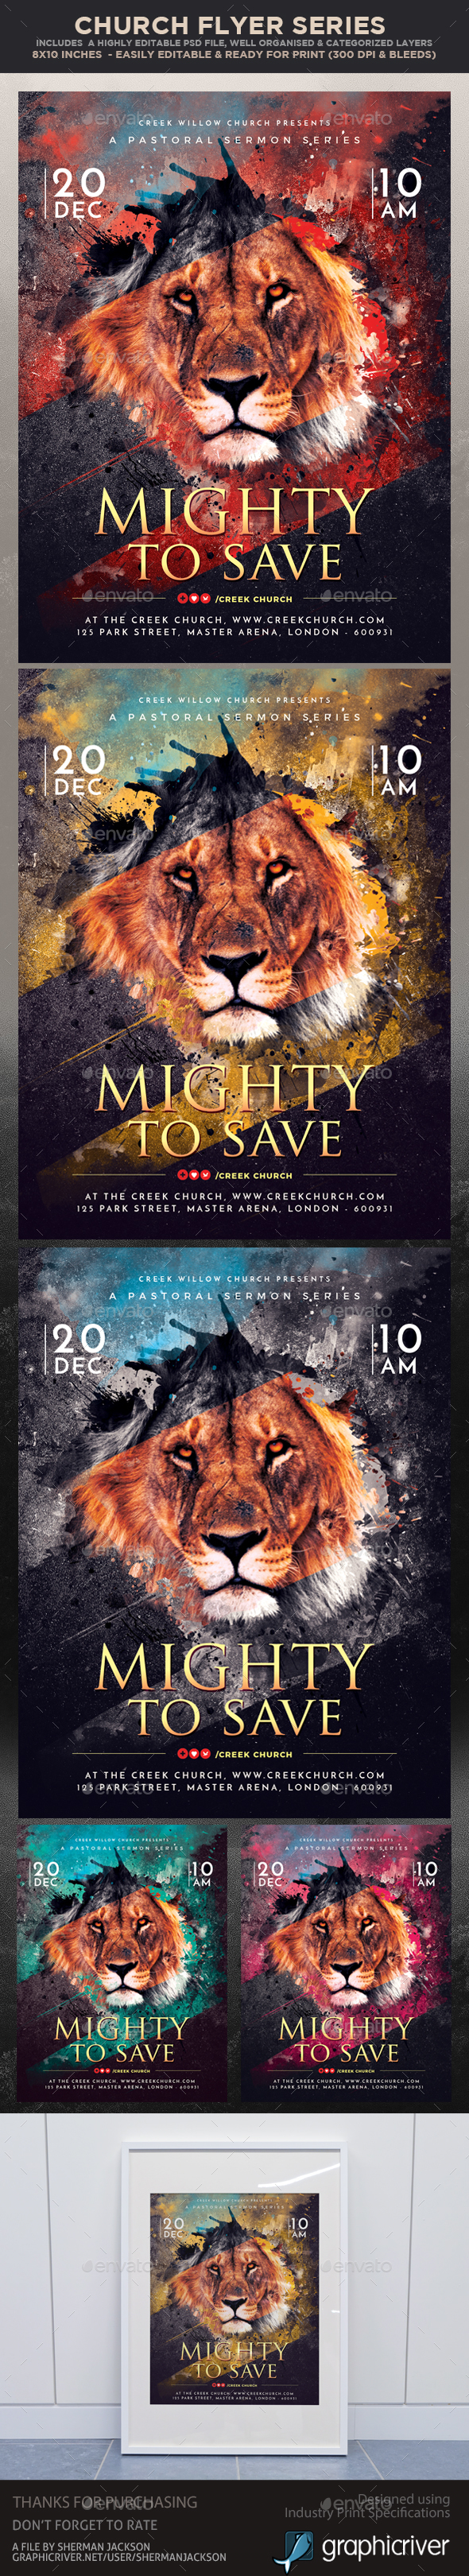 Church Themed Event Flyer - Mighty to Save - Church Flyers